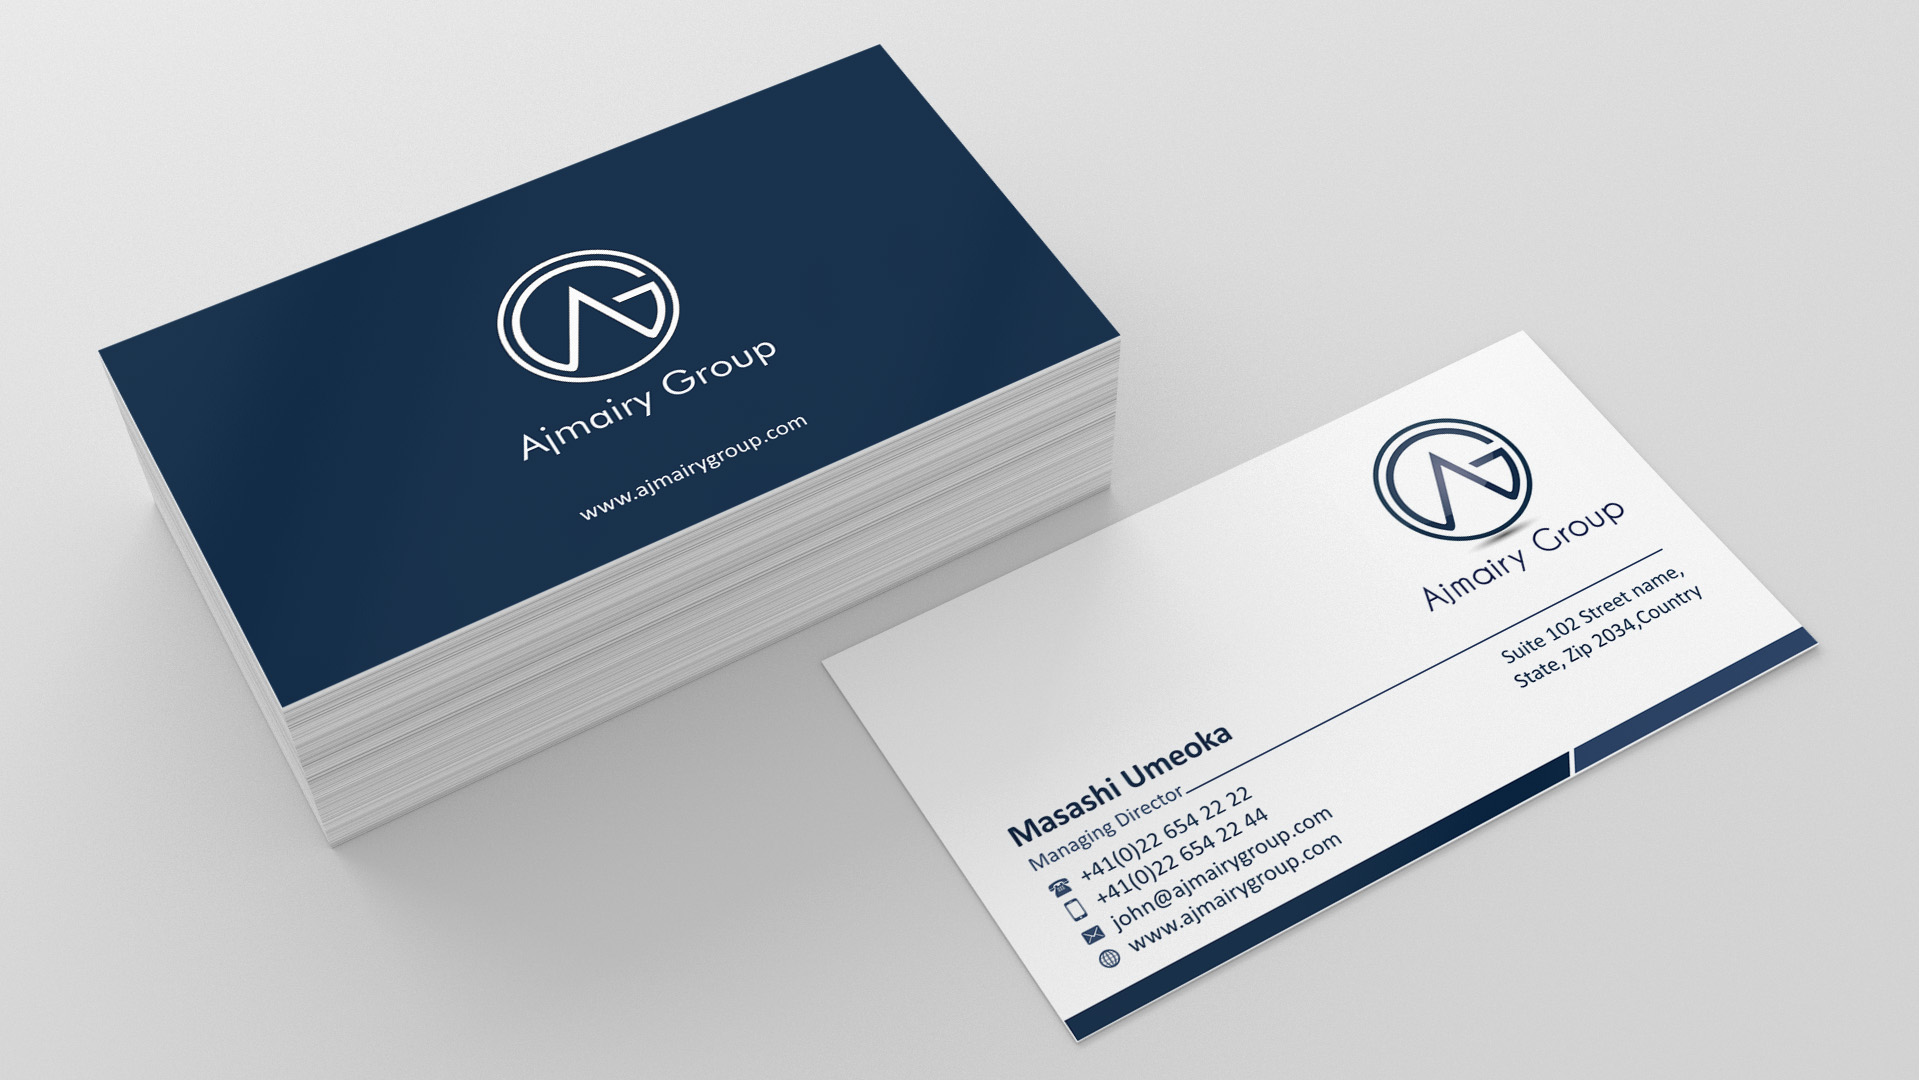 10 New Ideas Beautiful Business Card Designs In 2021 Beautiful Business Card Business Cards Layout Professional Business Card Design